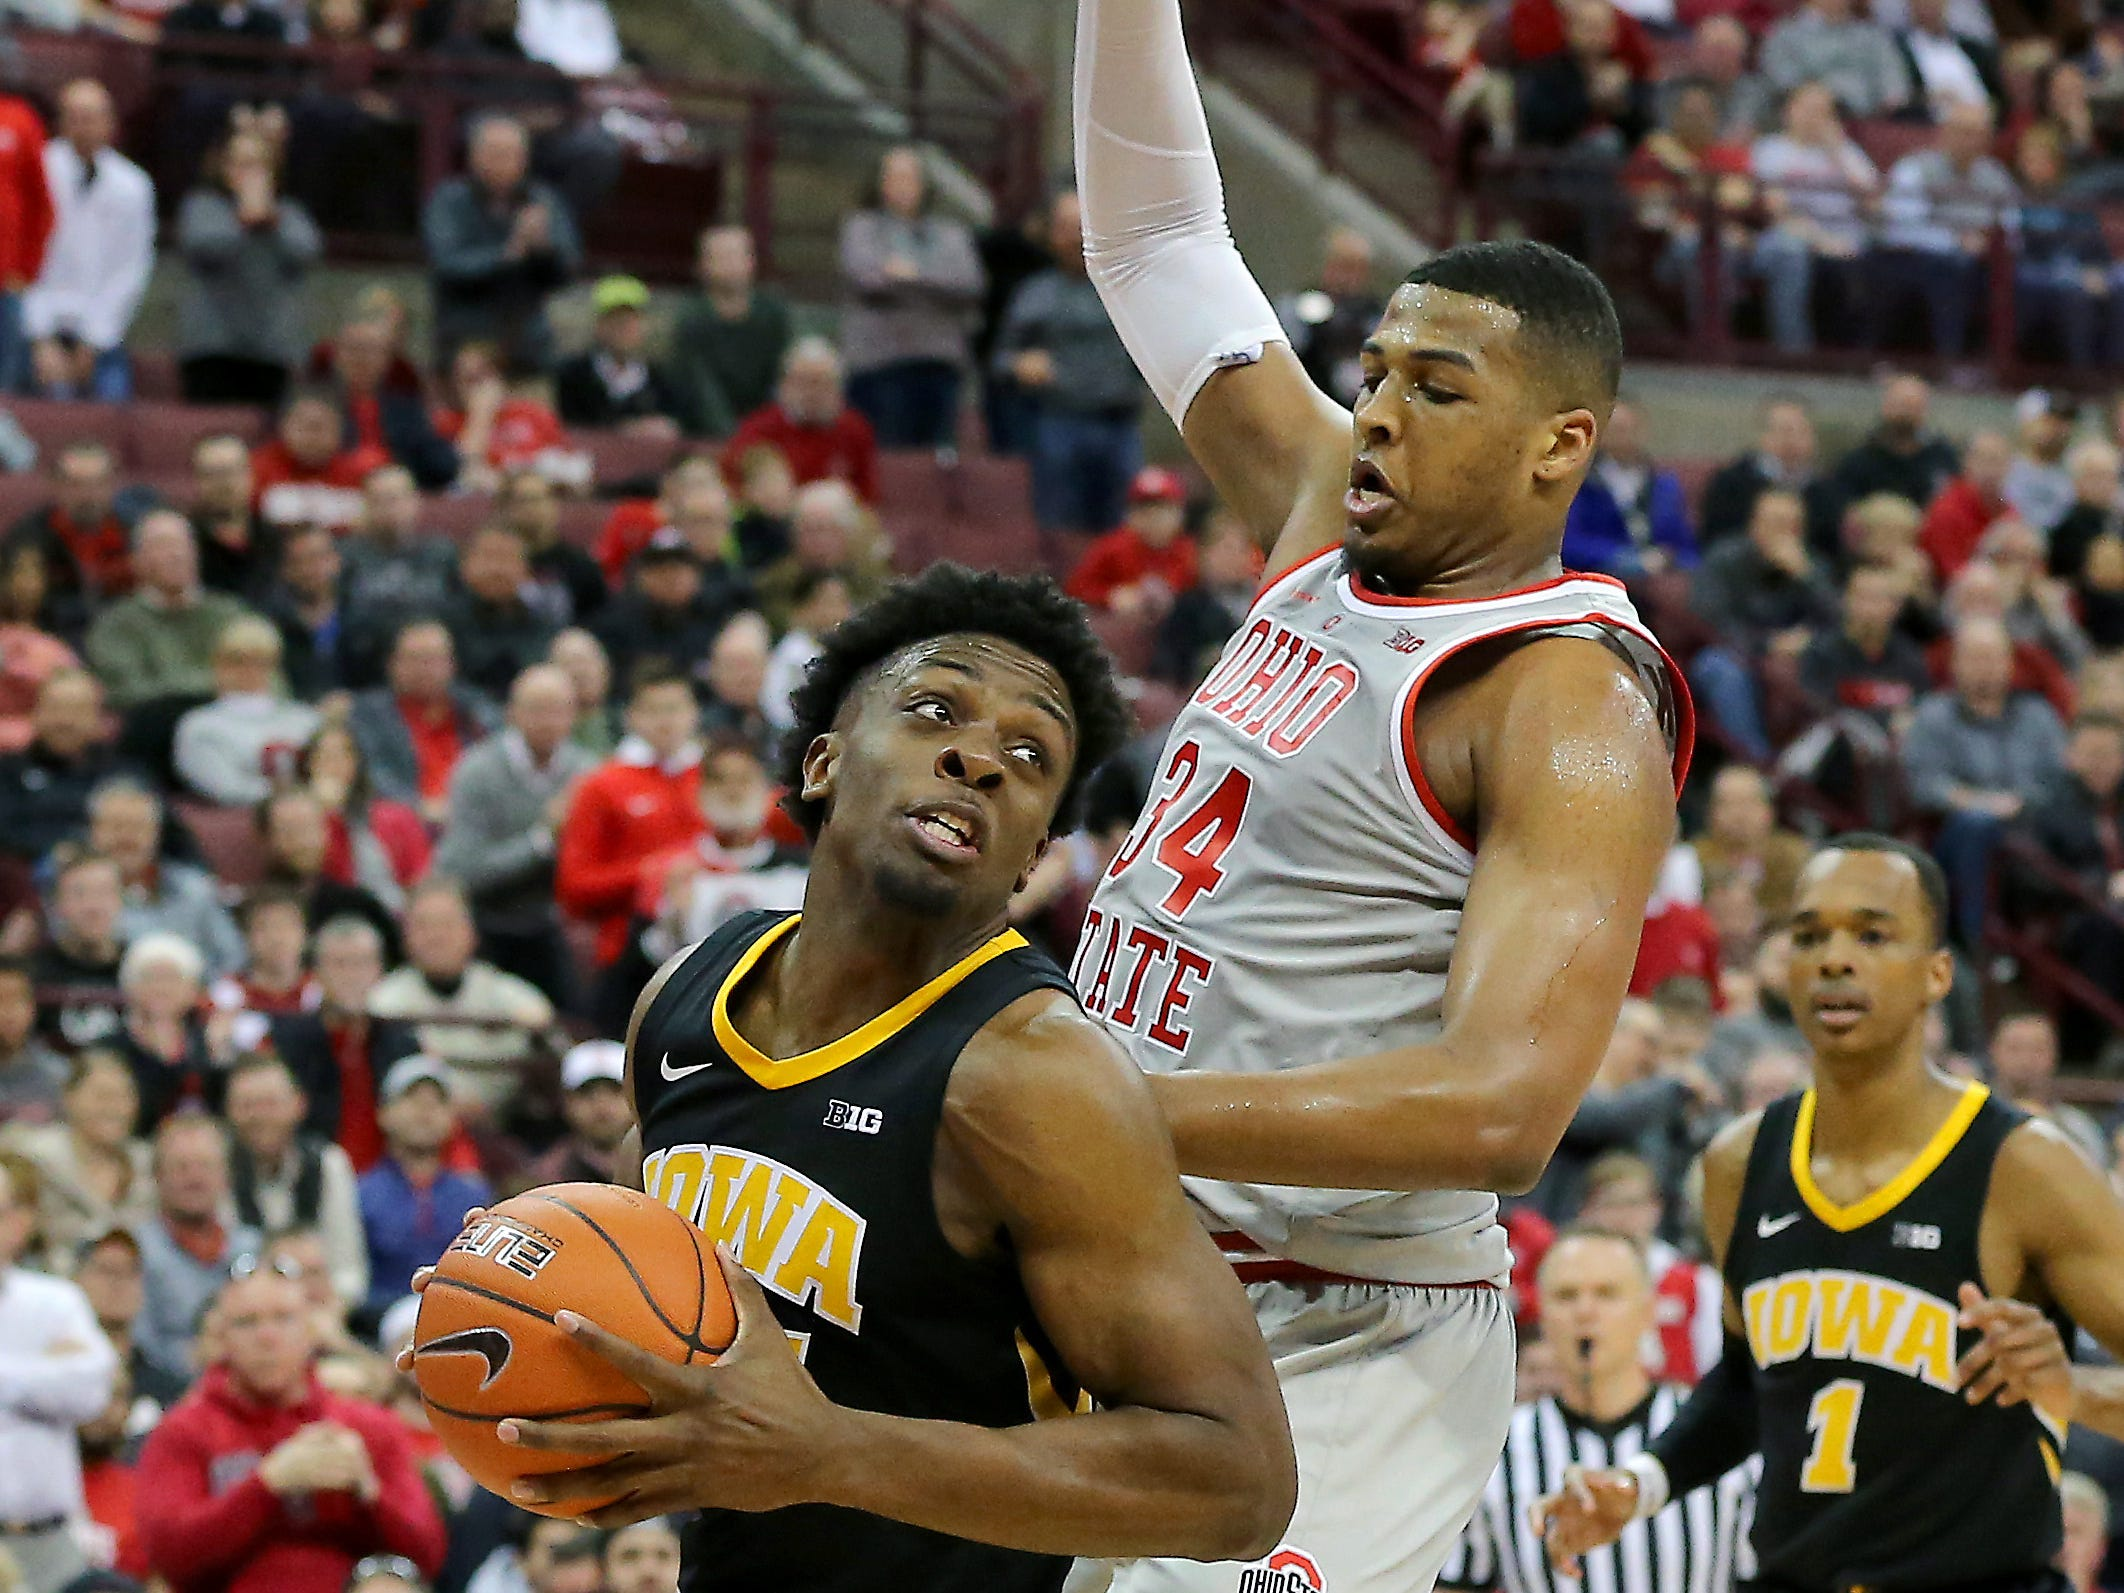 Feb 26, 2019; Columbus, OH, USA; Iowa Hawkeyes forward Tyler Cook (25) past Ohio State Buckeyes forward Kaleb Wesson (34) during the second half at Value City Arena.